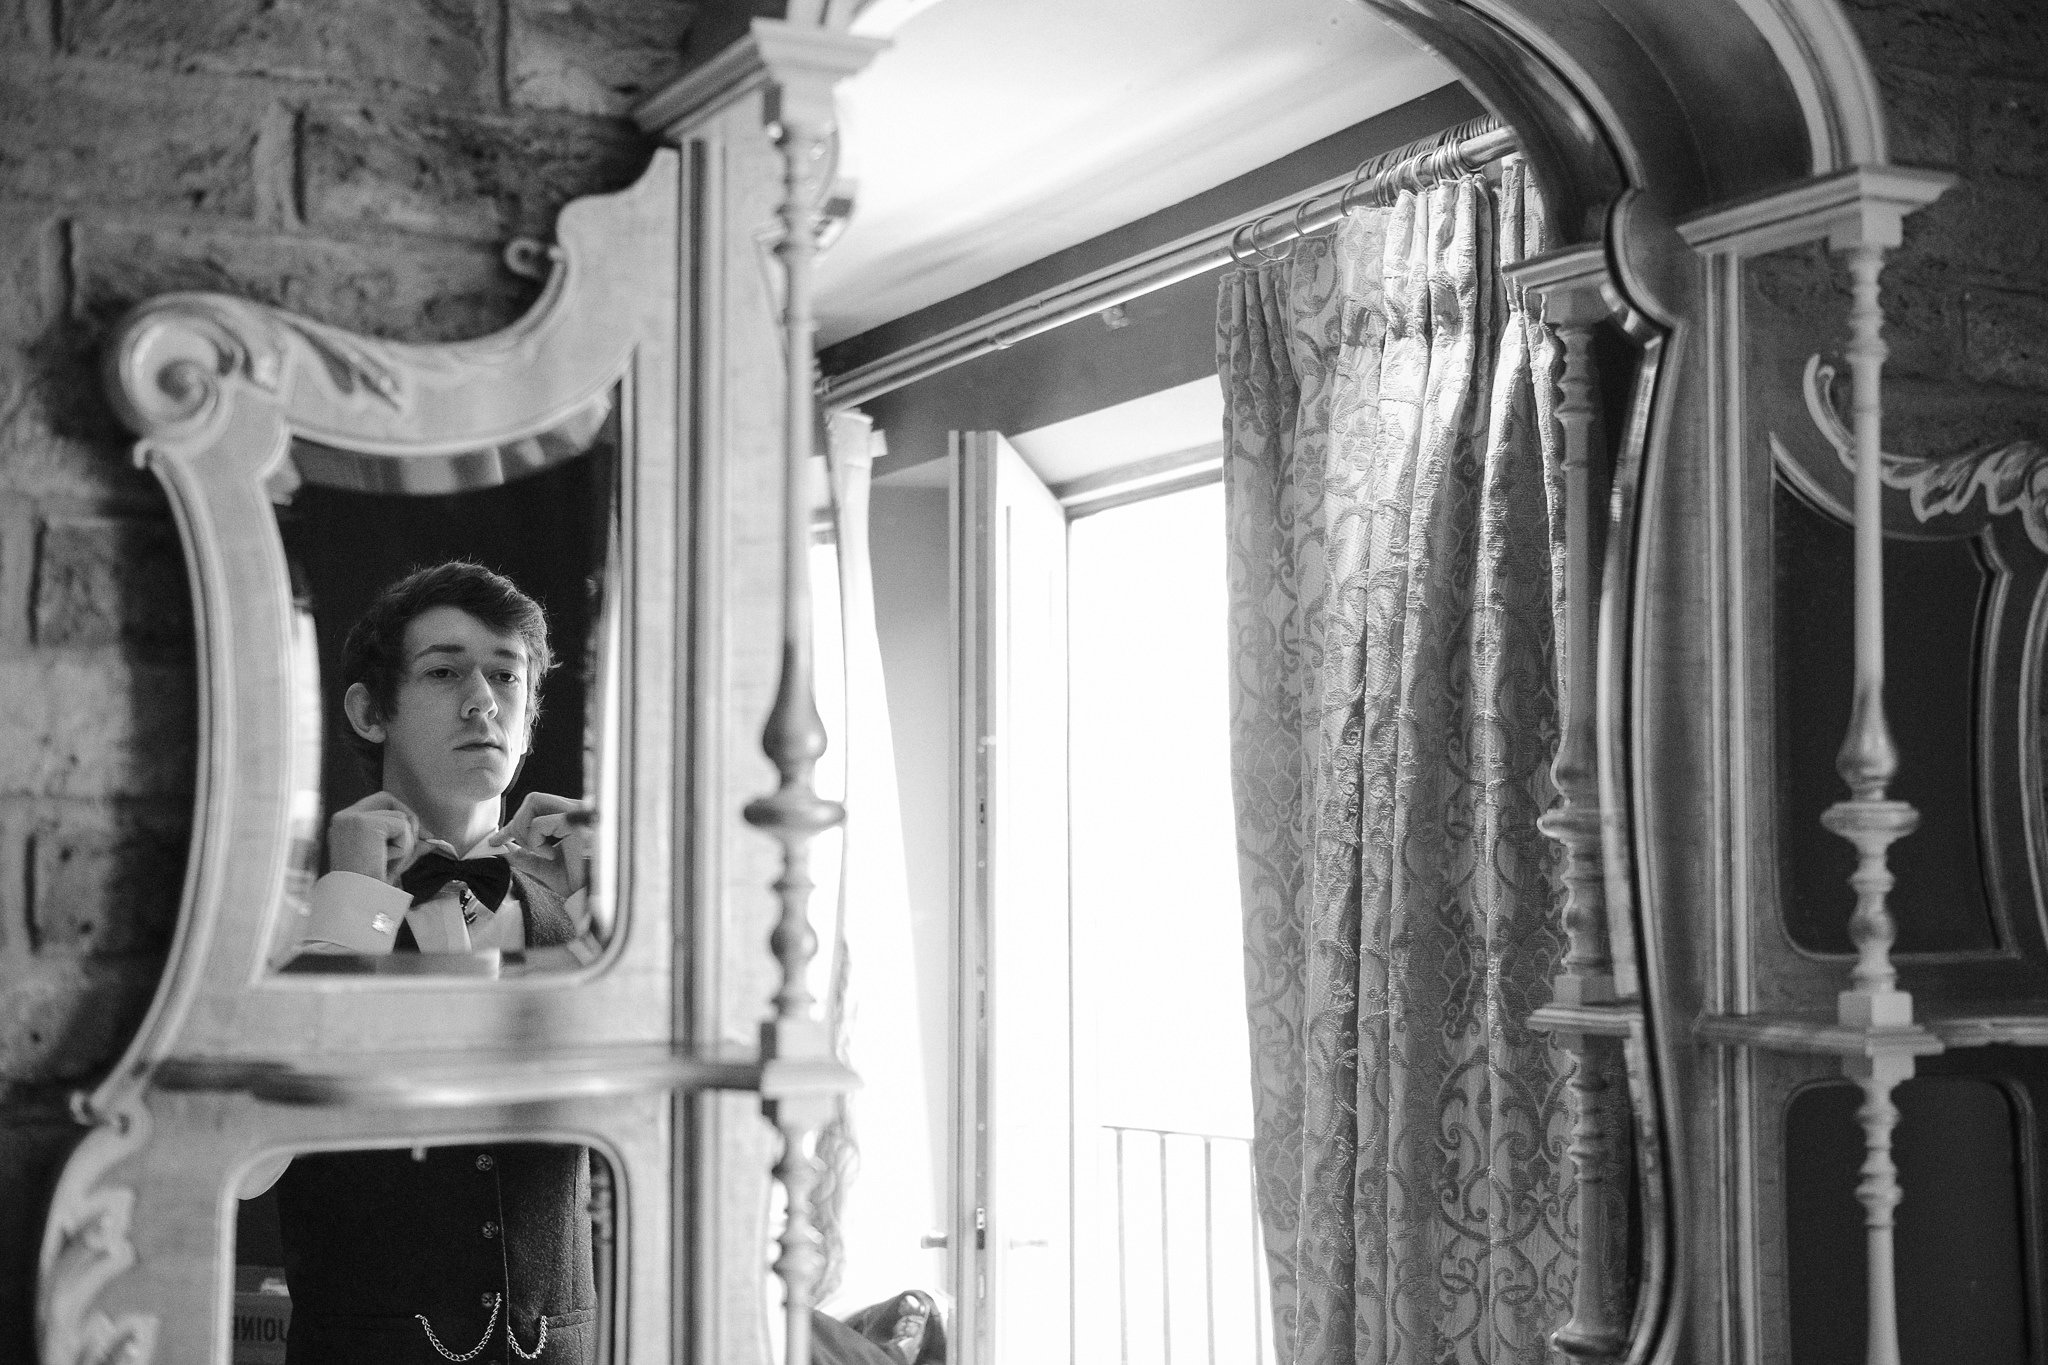 Groom adjusts his bow tie in the mirror in a black and white photo taken at Newton Hall